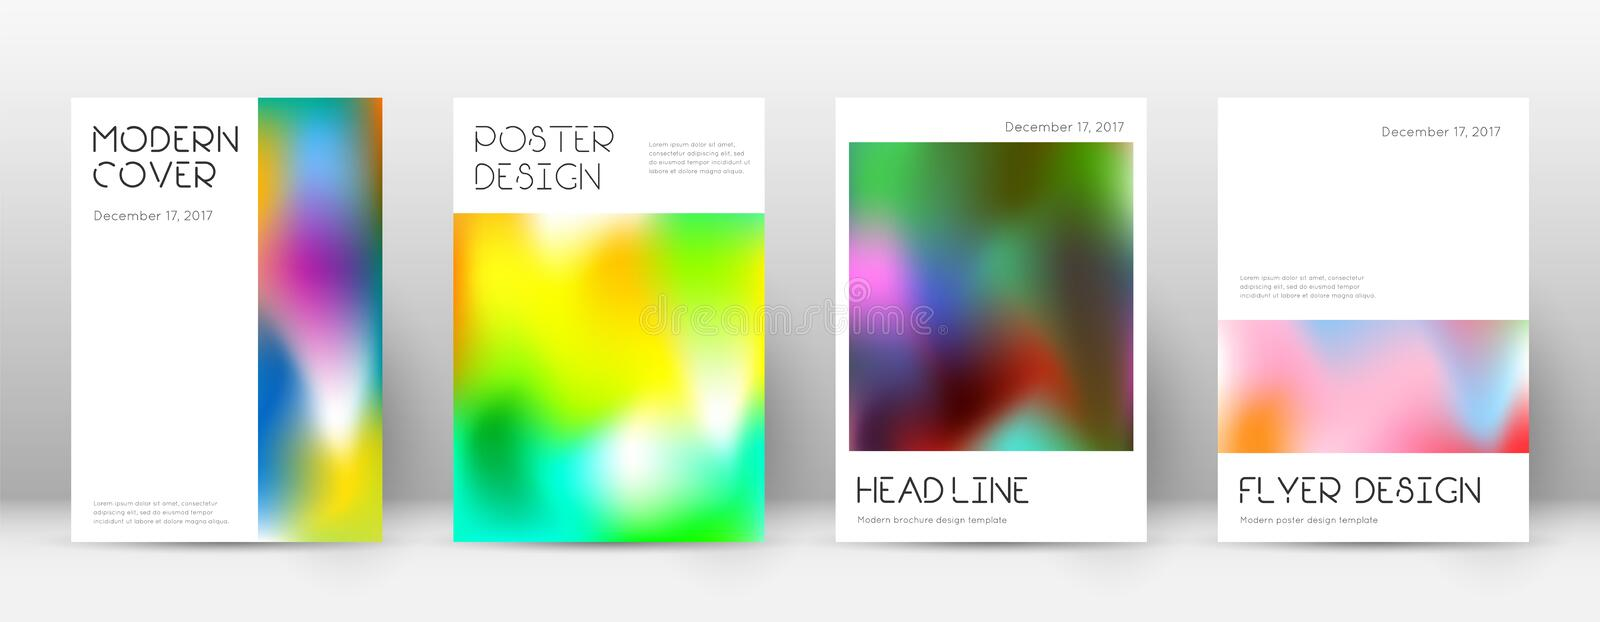 Flyer layout. Minimal exquisite template for Broch. Ure, Annual Report, Magazine, Poster, Corporate Presentation, Portfolio, Flyer. Appealing colorful cover page vector illustration